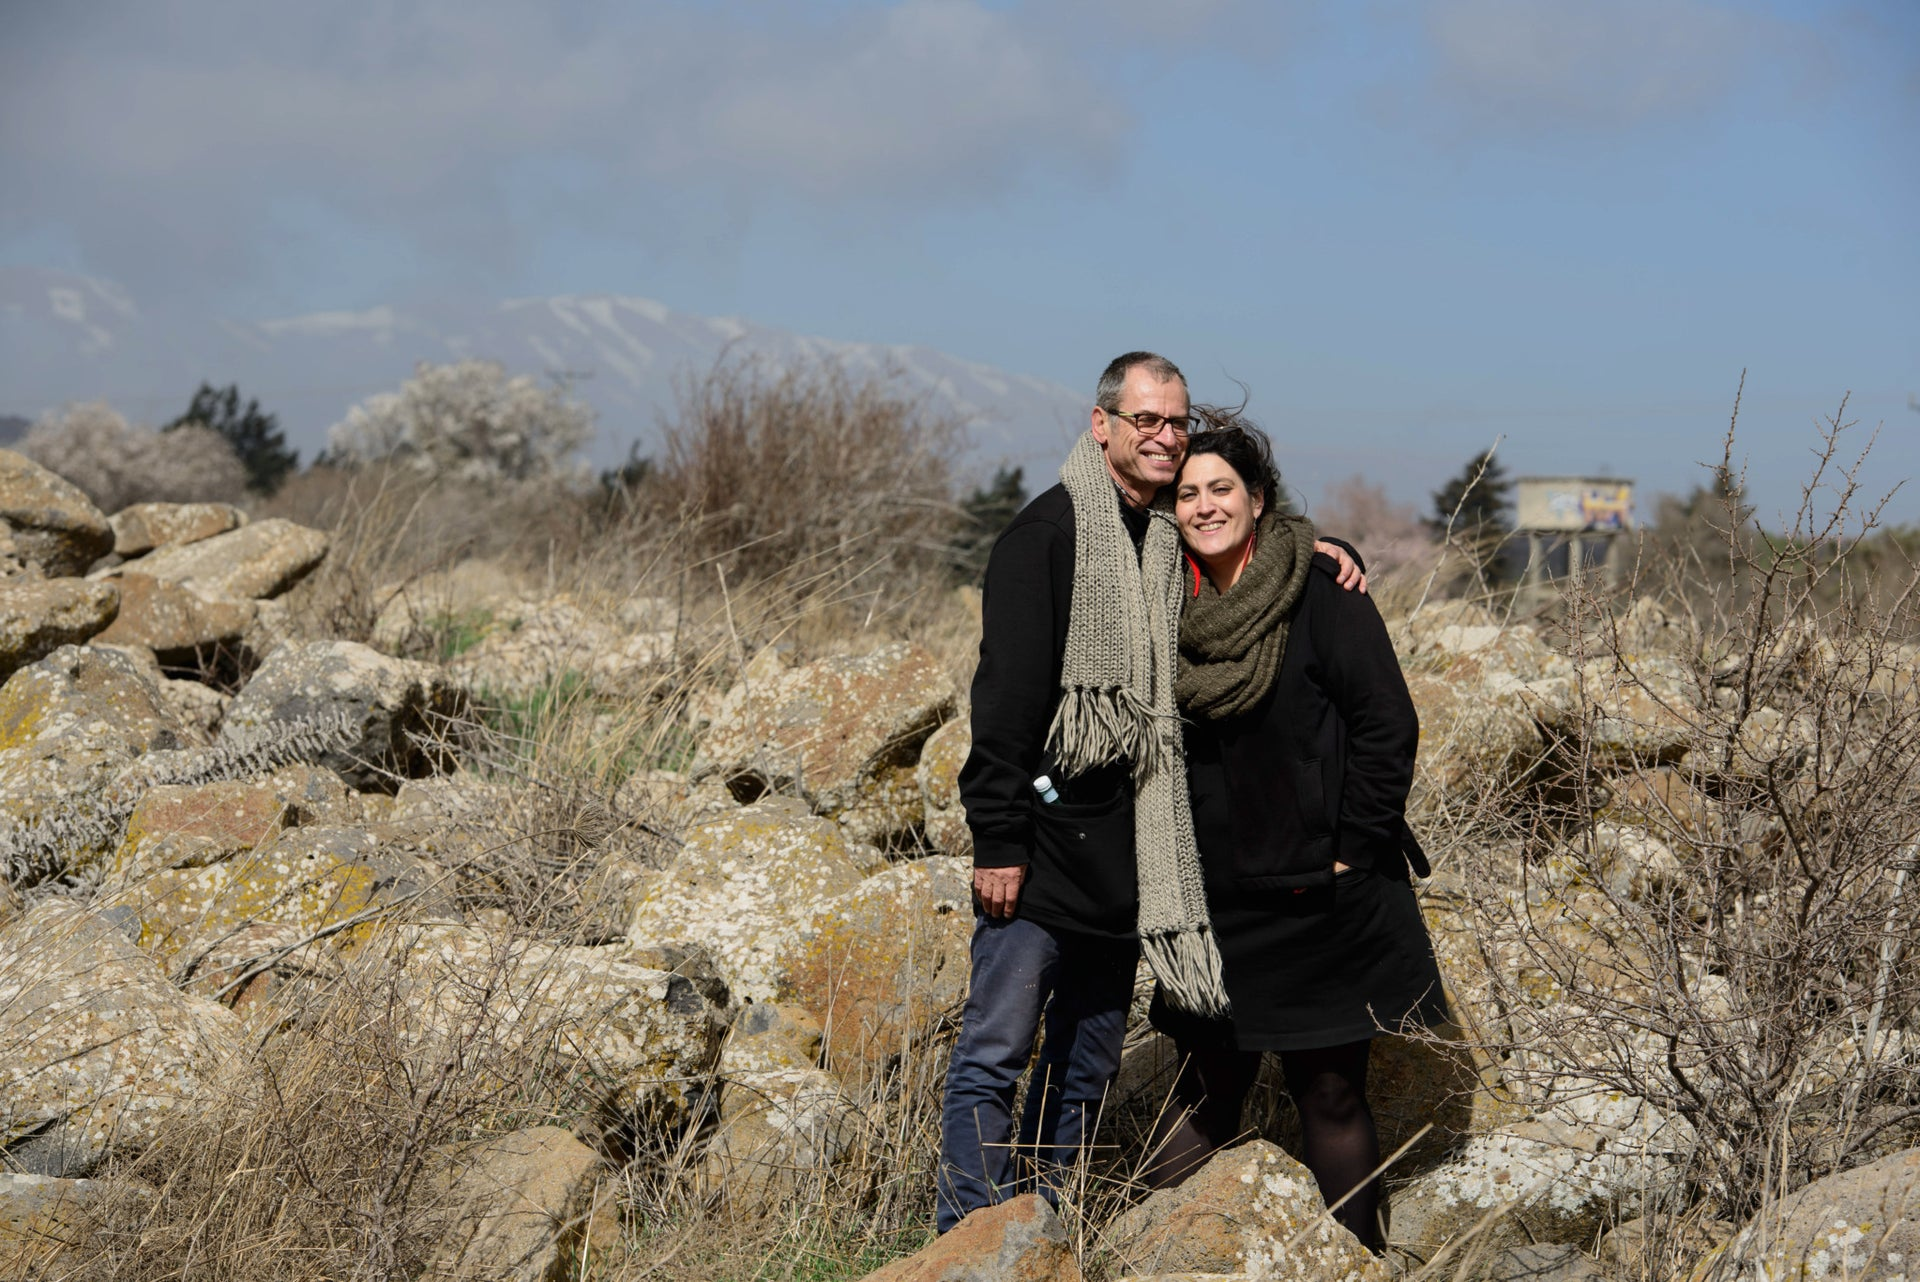 Eitan Bronstein Aparicio and his partner, Eléonore Merza, in the Golan Heights.